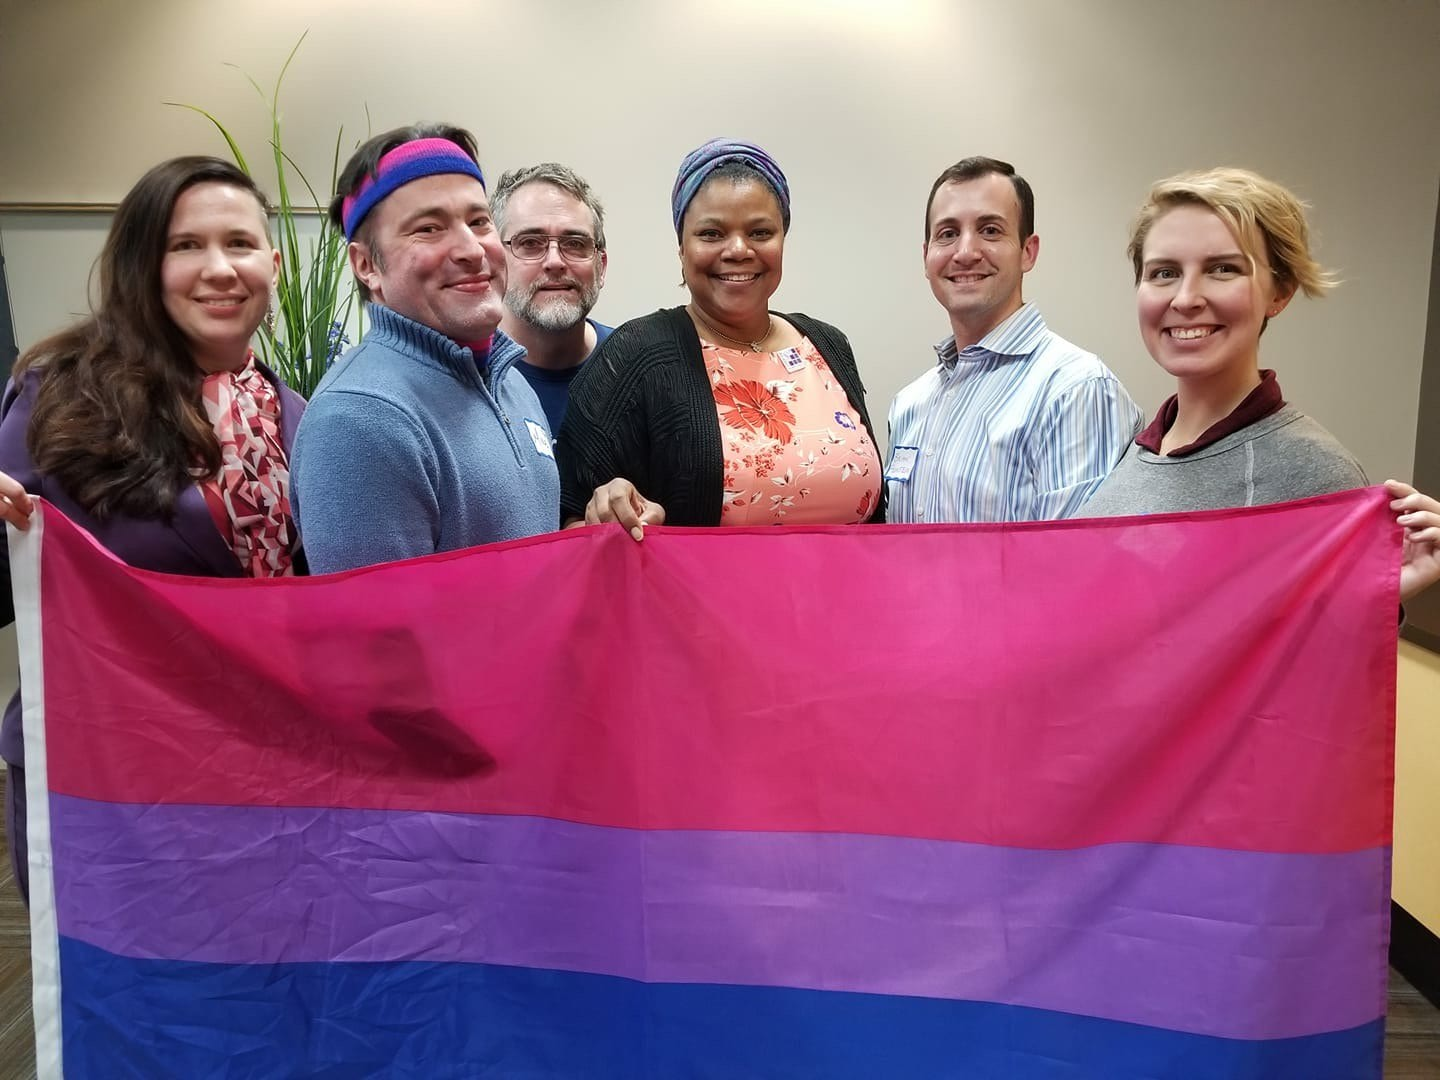 A handful of members of the Chicago Bisexual Health Task Force, from left to right: Lauren Beach, Mike Oboza, Jim Pickett, Adrienne McCue, Brian Feinstein, and Ashley Walker.